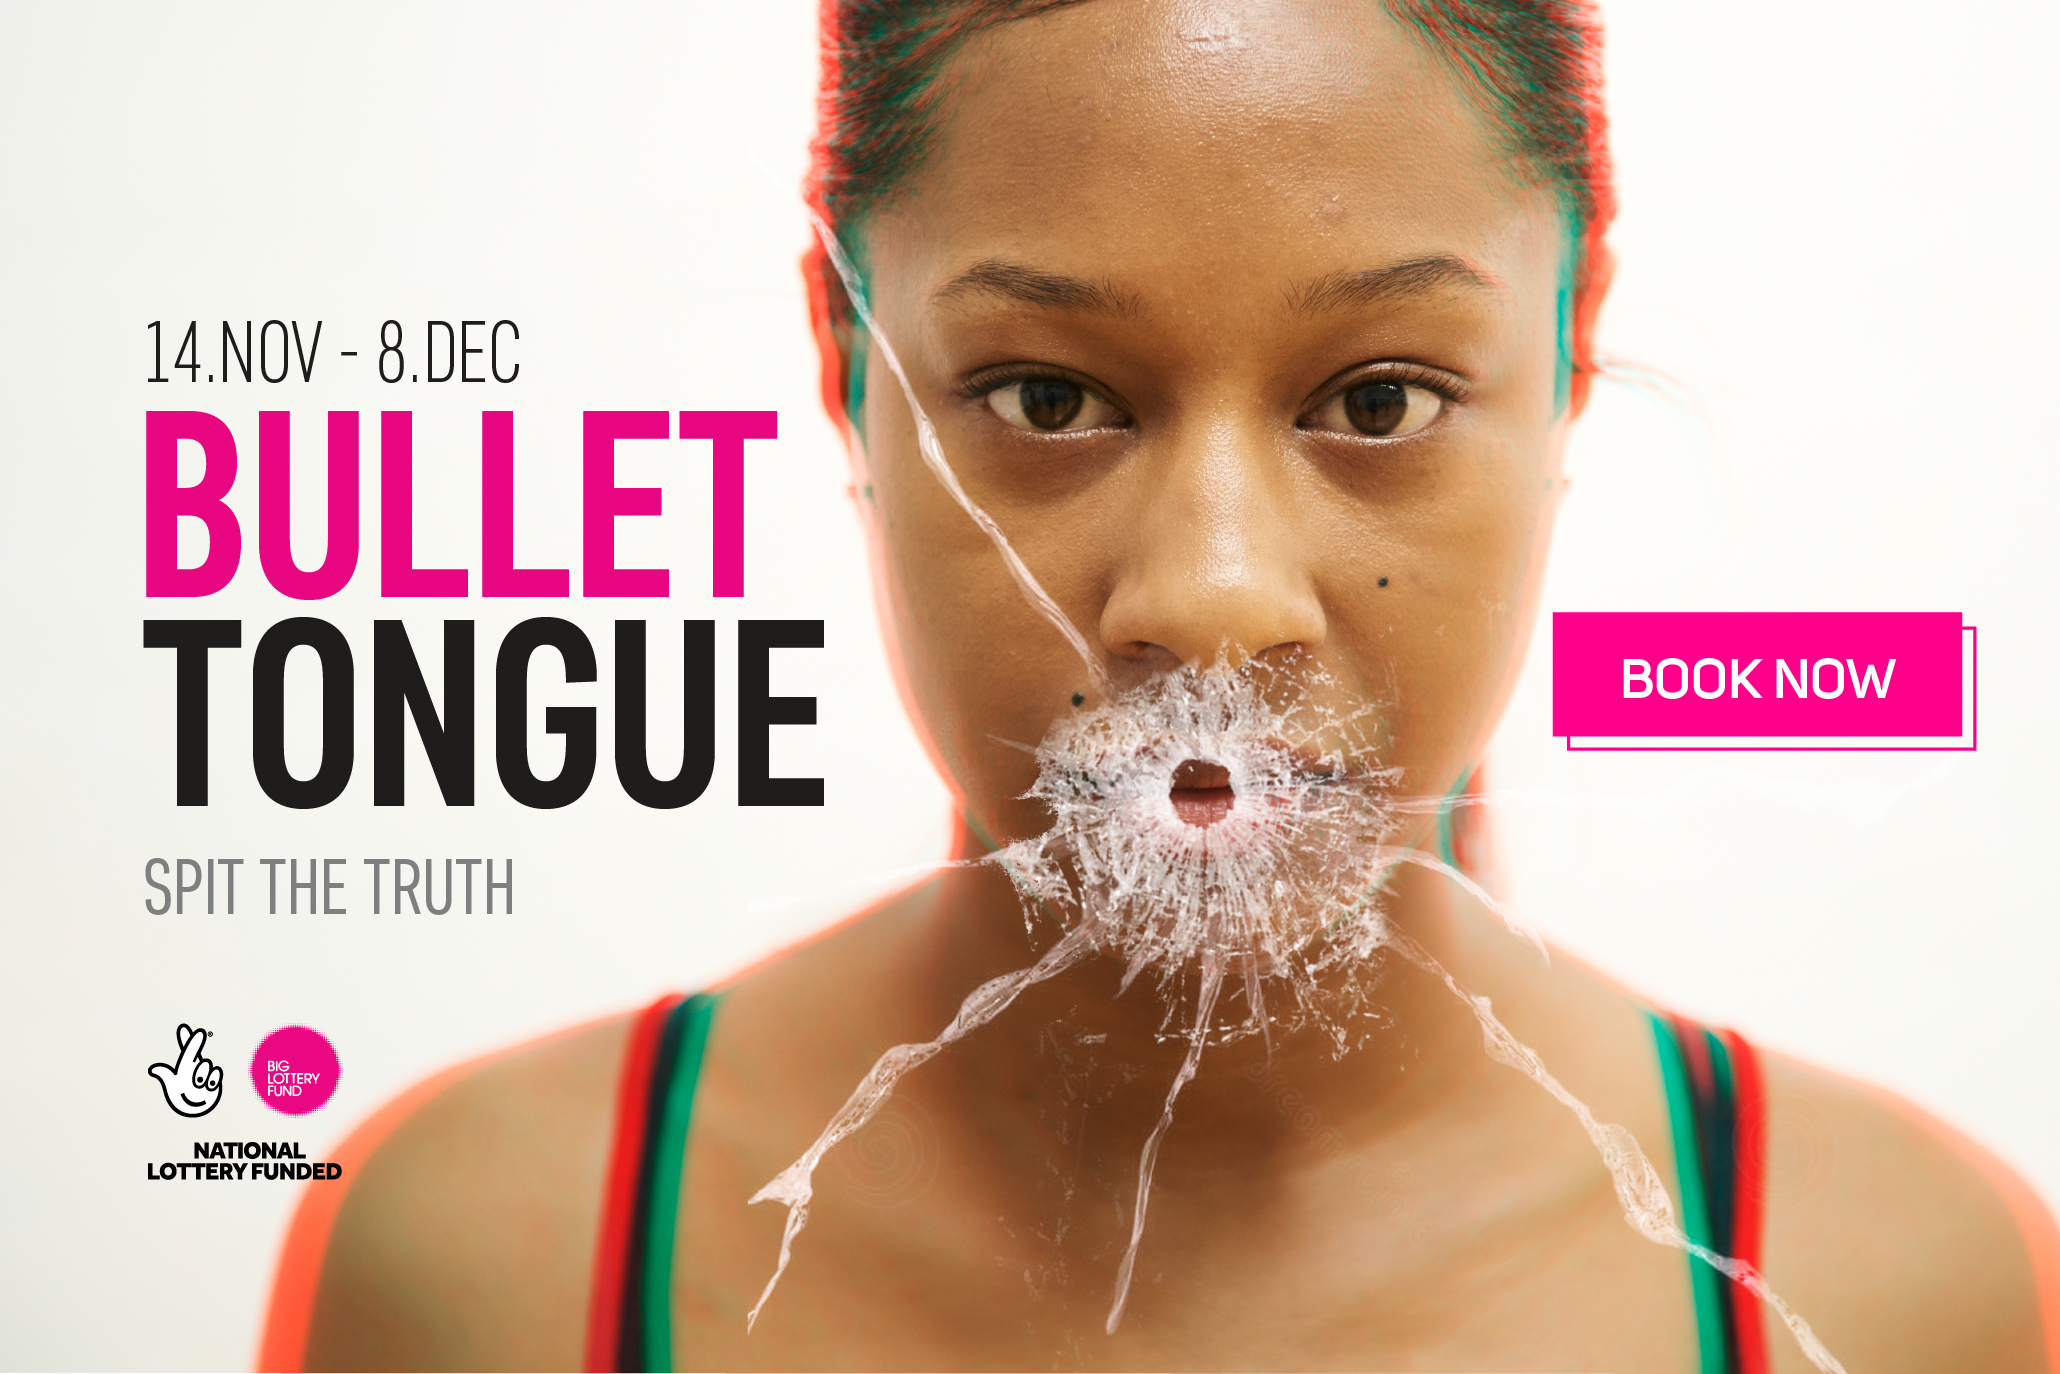 Bullet Tongue Post Show Discussion - Saturday 8th December